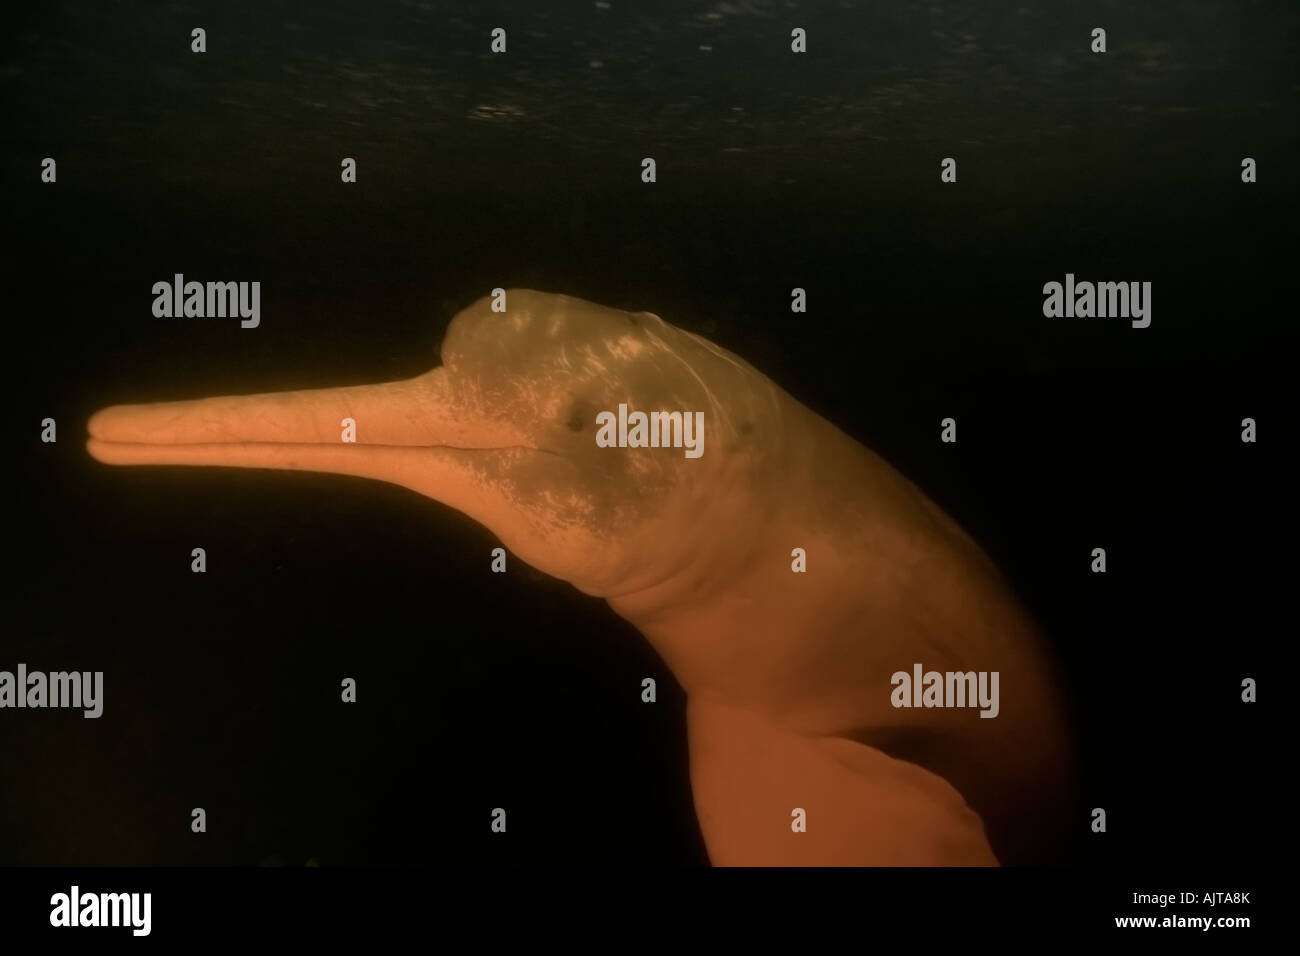 Pink river dolphin or boto Inia geoffrensis Negro River Amazonas Brazil - Stock Image